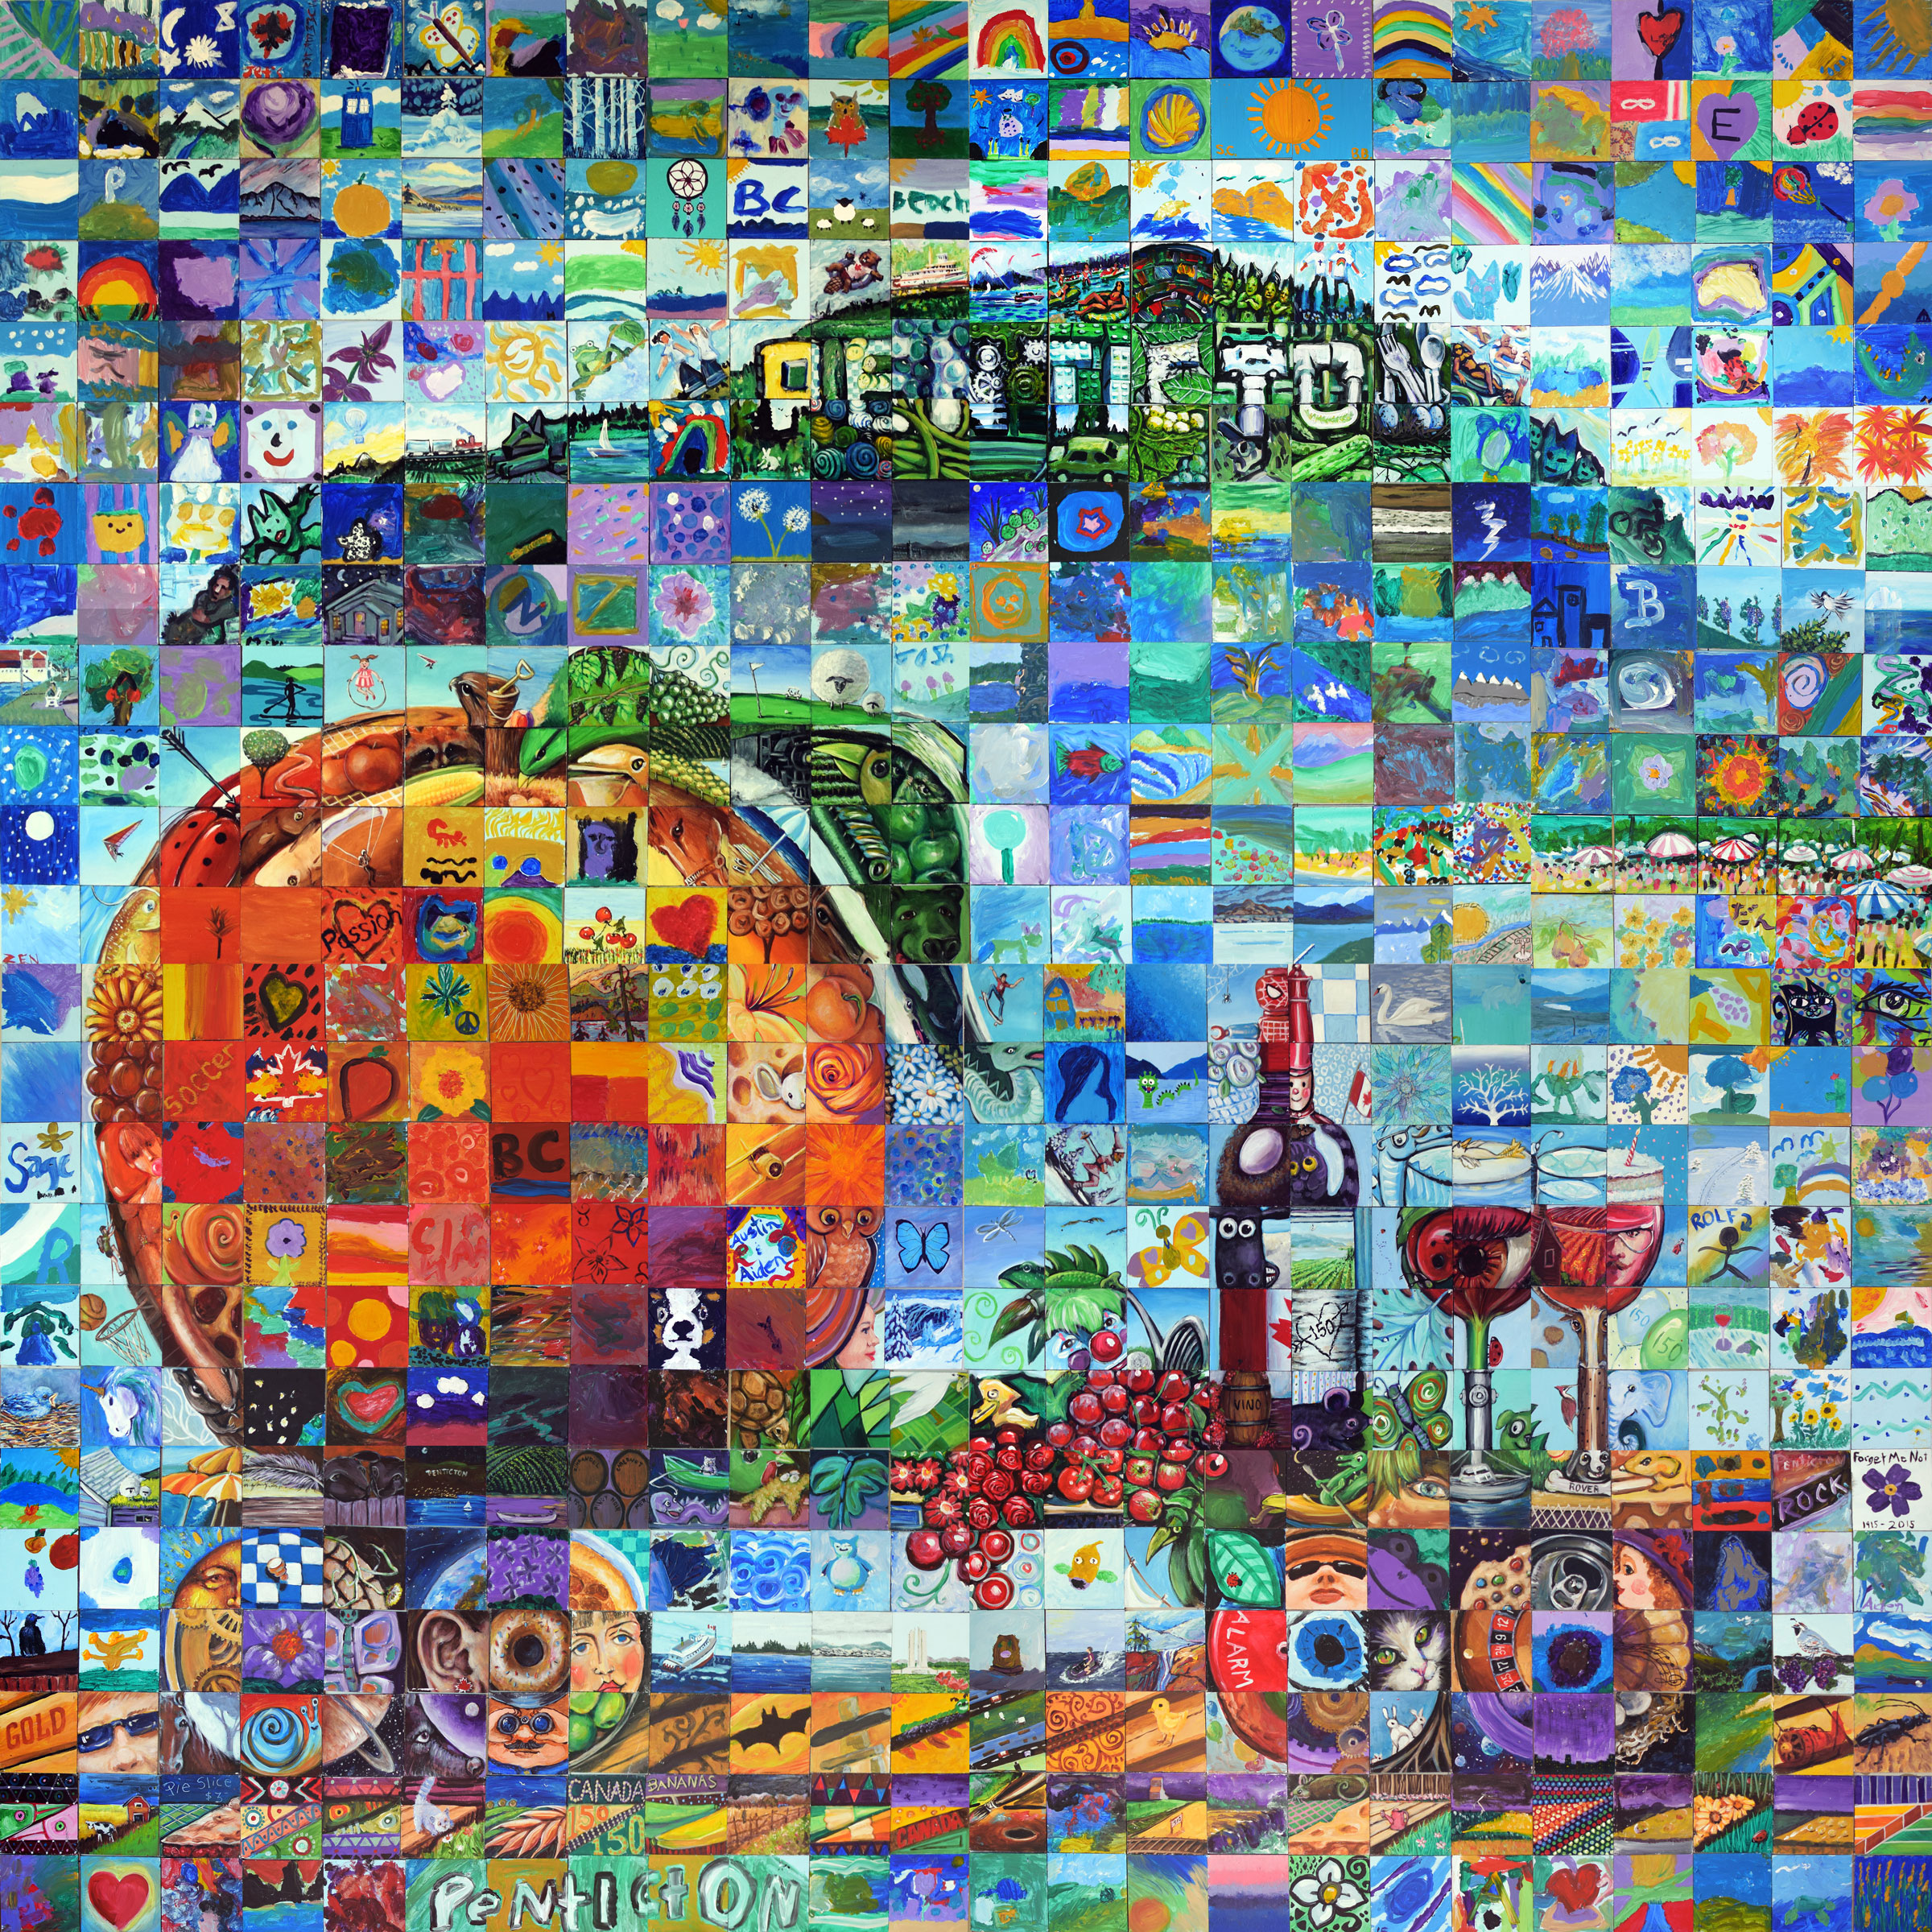 Penticton canada mosaic murals for Thank you mural